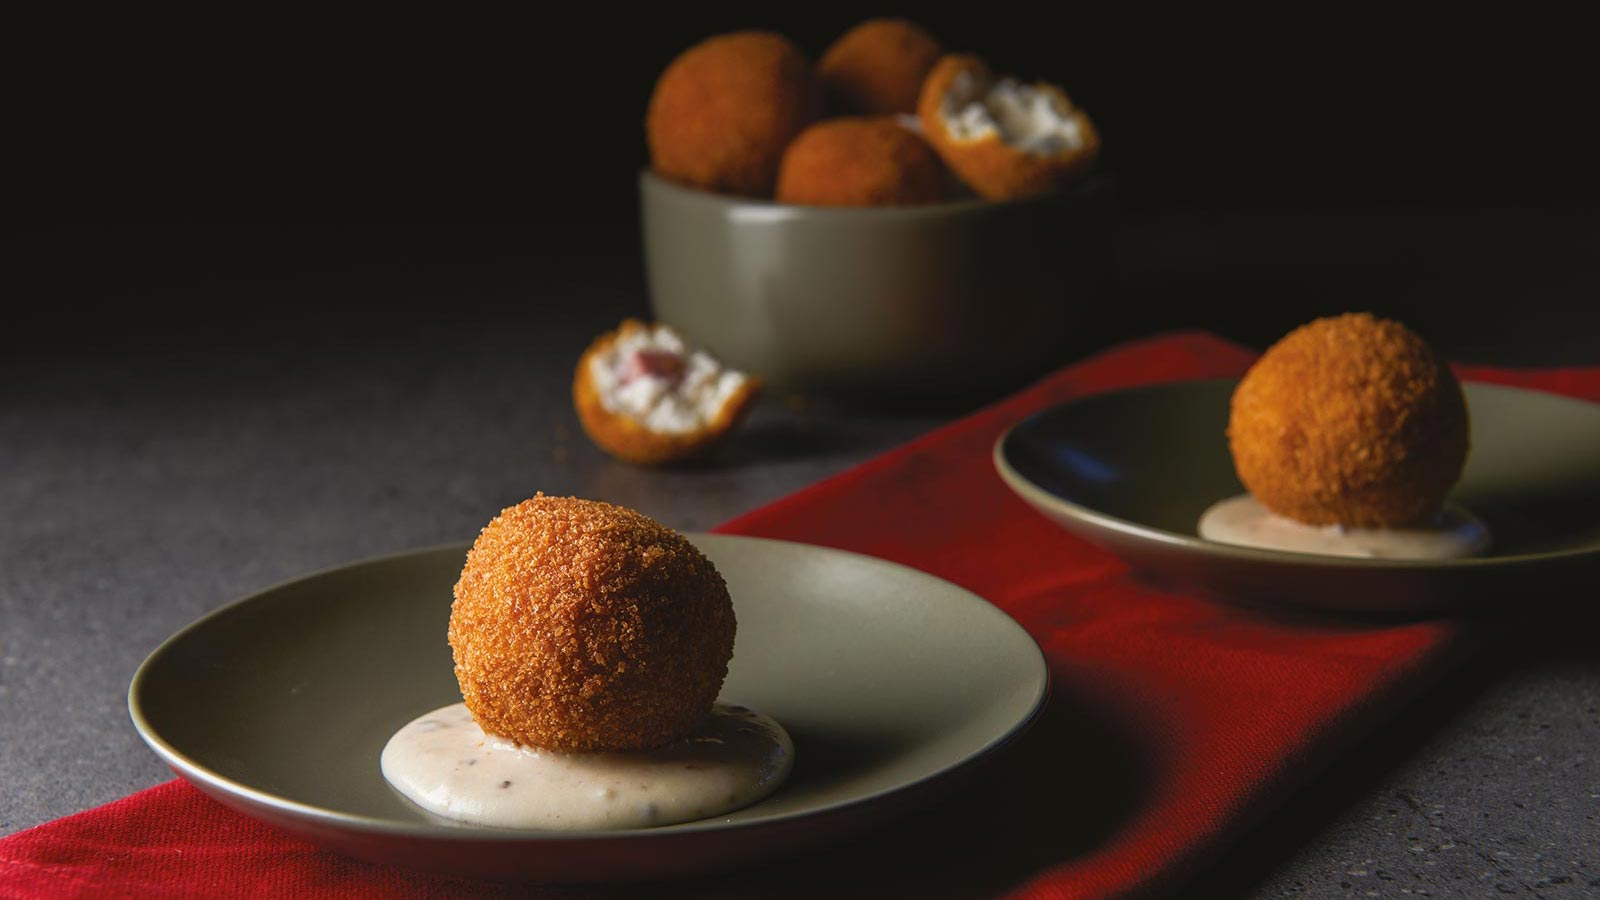 Mortadella And Ricotta Croquette On Cheese And White Truffle Cream